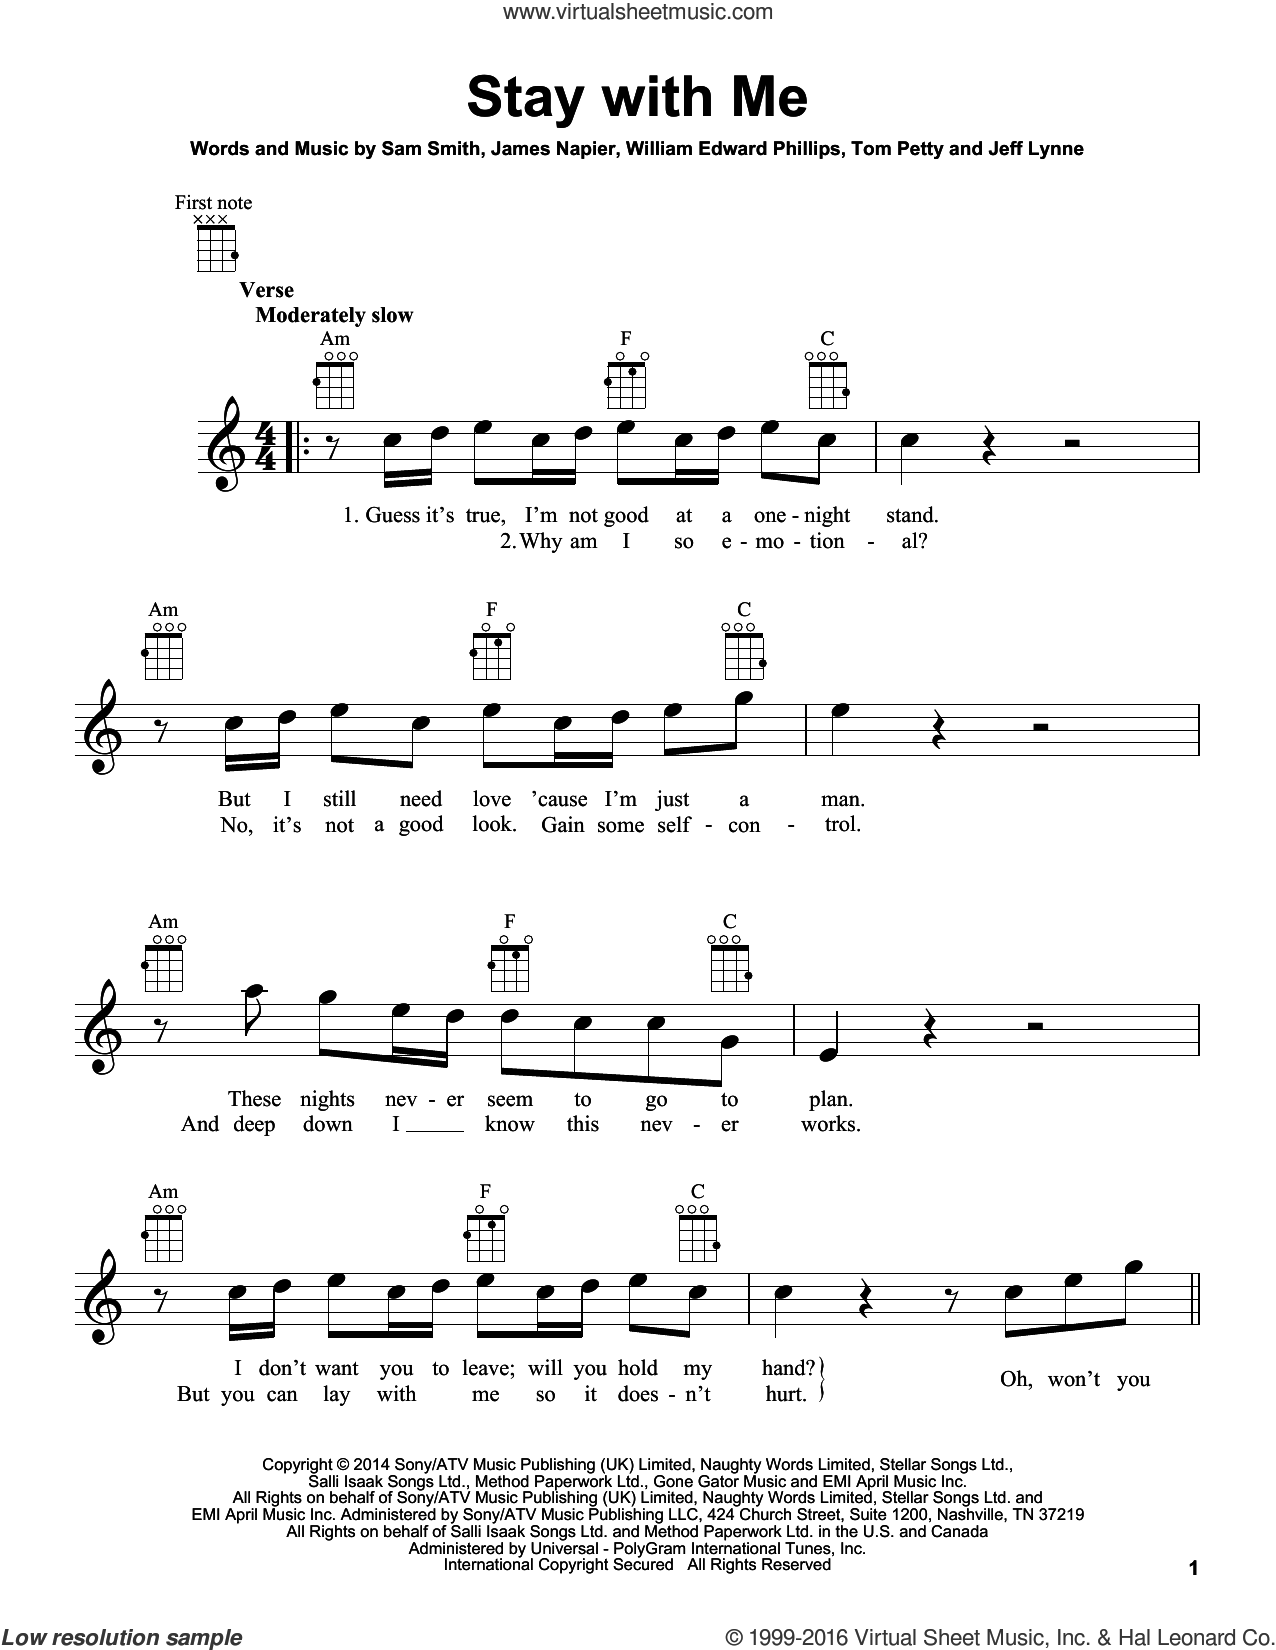 Stay With Me sheet music for ukulele by William Edward Phillips